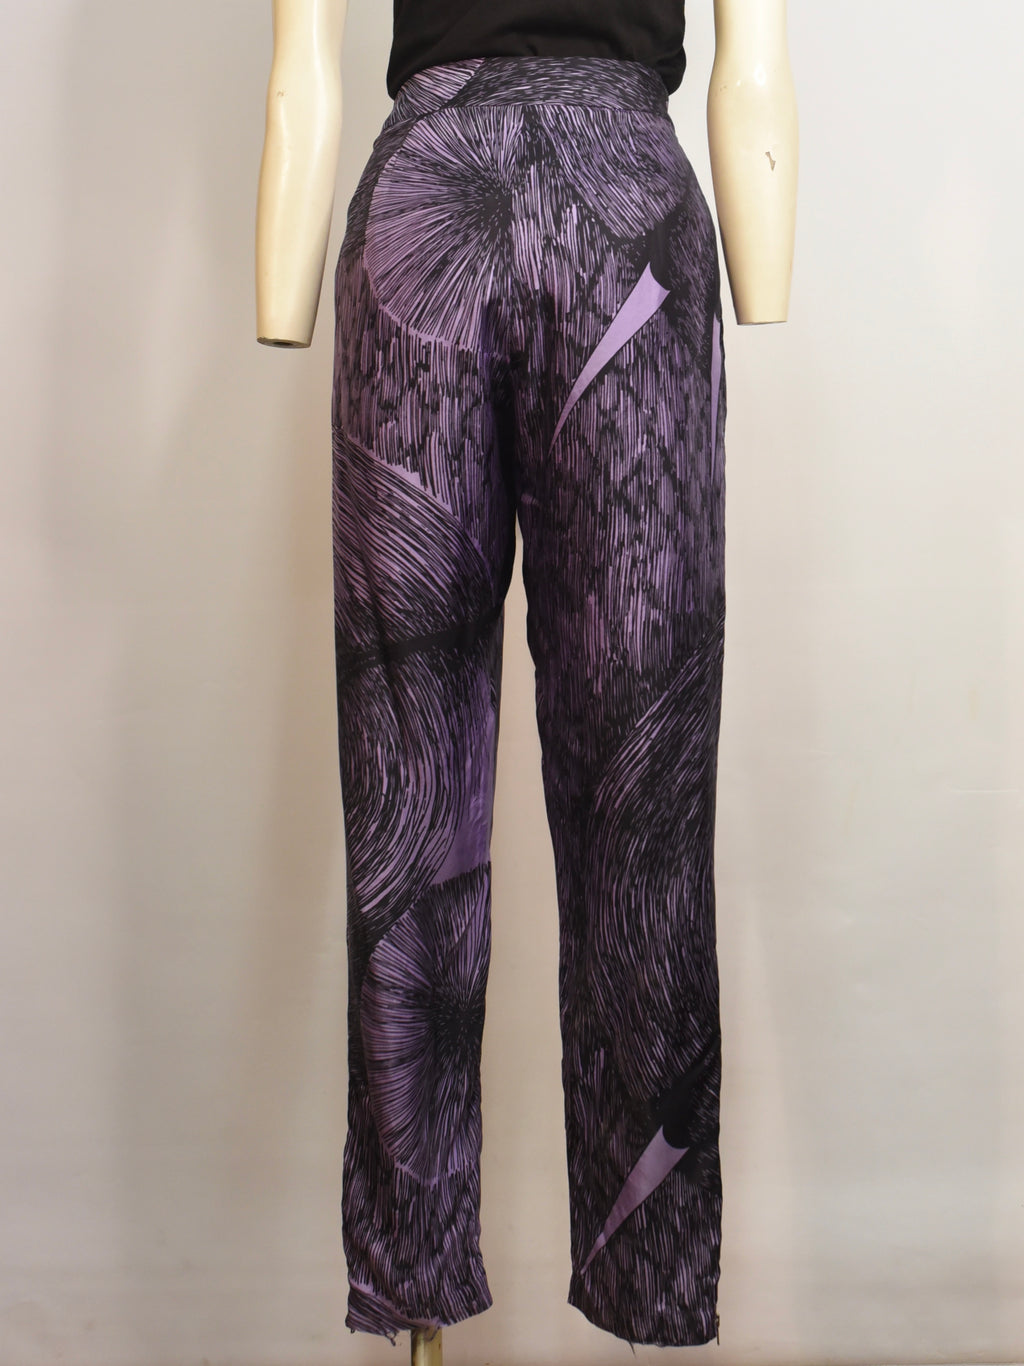 Boheme Pants - AS IS - tear at bottom